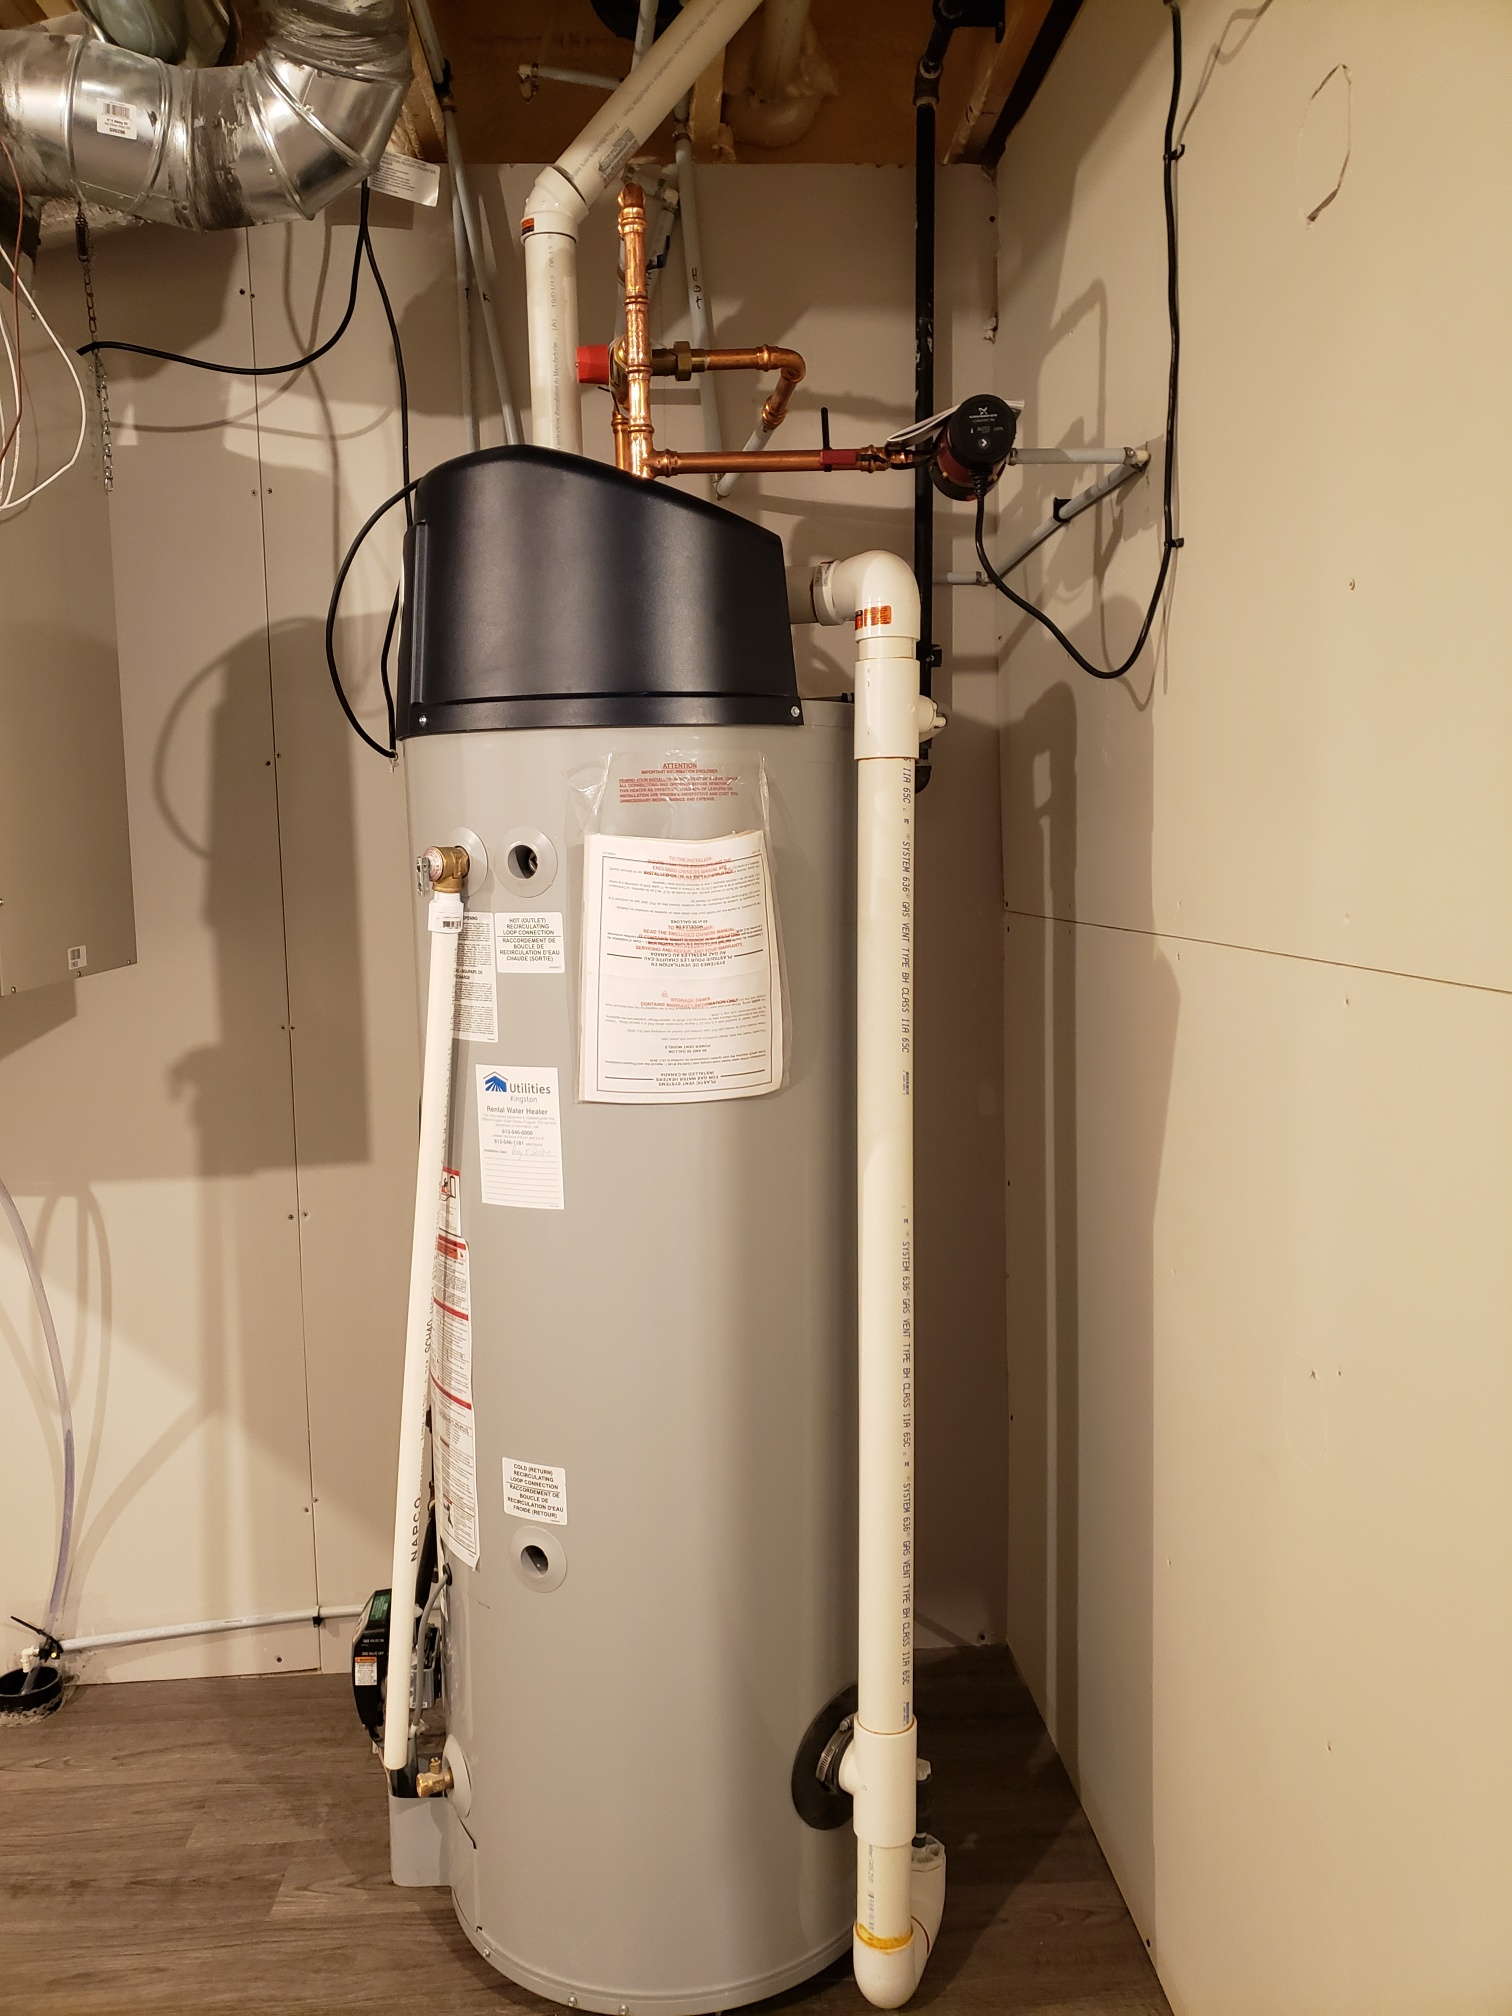 Enersave Condensing Hot Water Heater